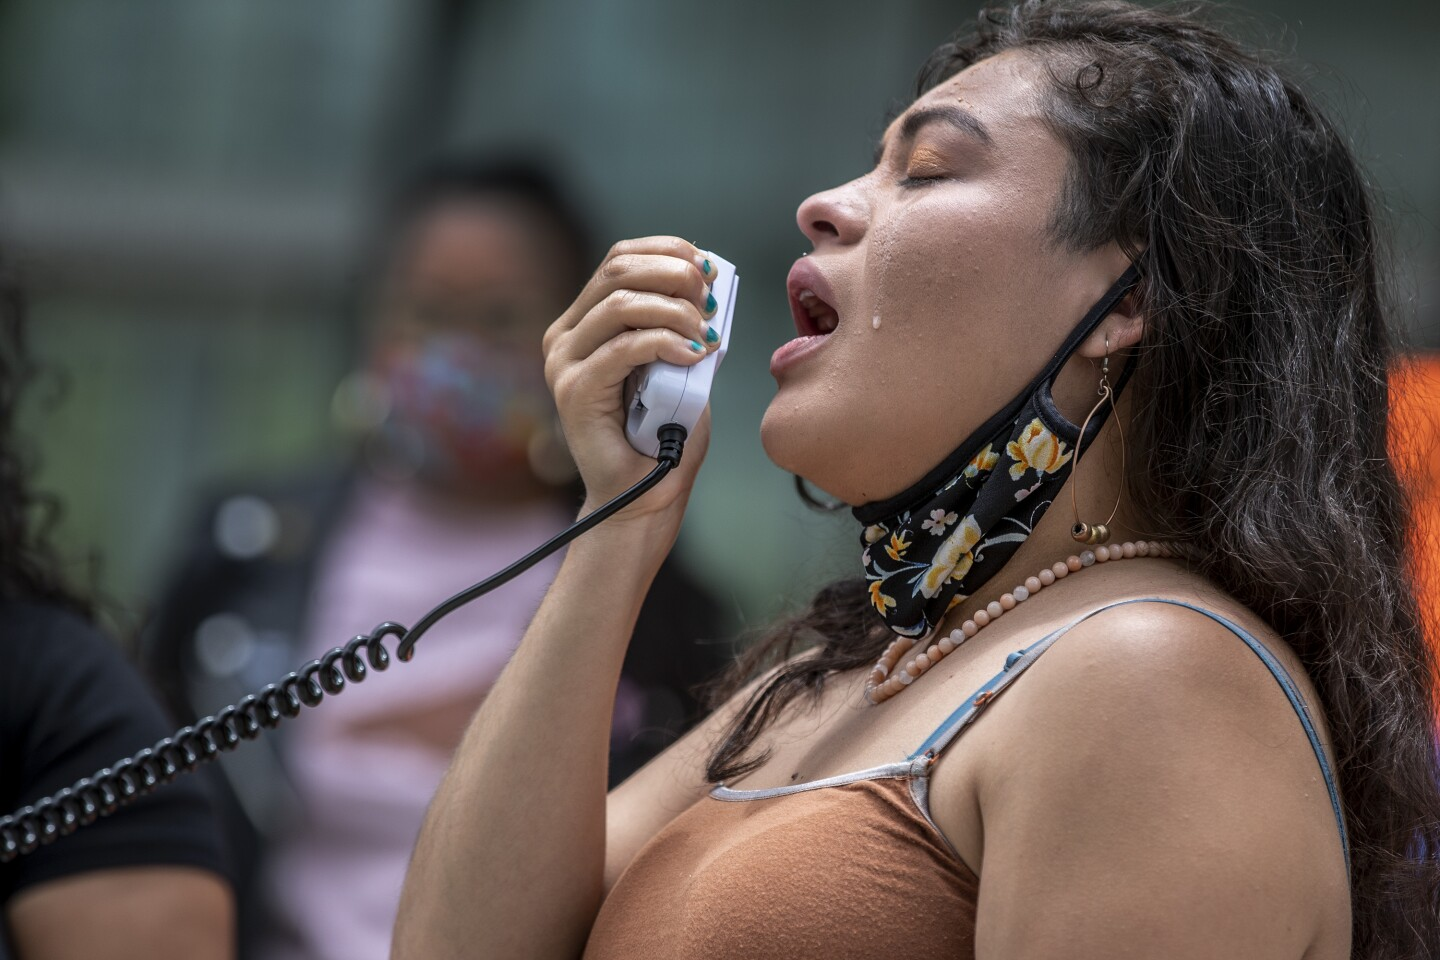 Los Angeles, CA, Thursday, June 18, 2020 - Claudia Rueda cries as she denounces ICE and a capitalist system that victimizes people of color as DACA recipients and supporters gather outside LAPD headquarters to talk about the SCOTUS ruling against President Donald Trump's efforts to end the program. (Robert Gauthier / Los Angeles Times)